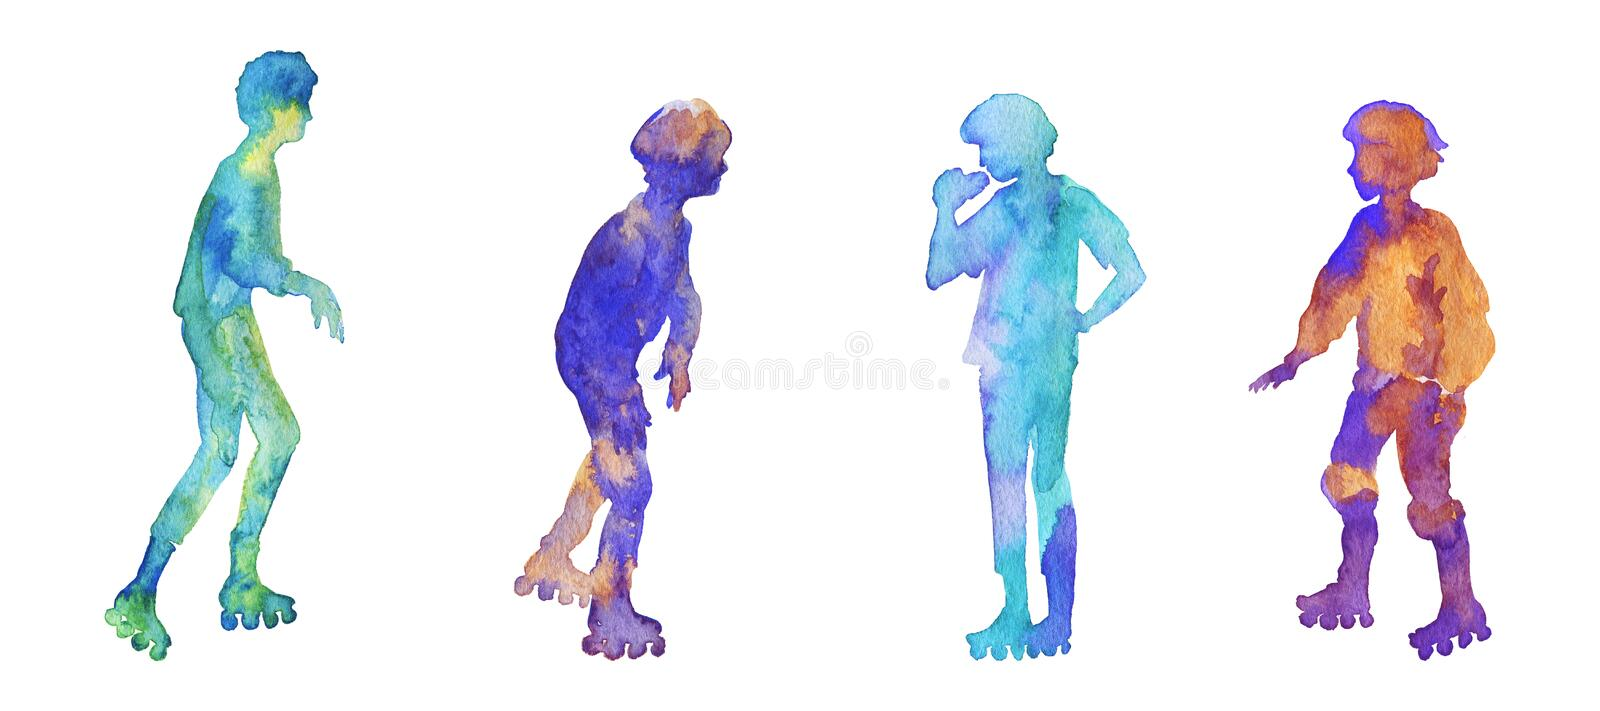 Watercolor set of silhouettes. Watercolor roller skates silhouettes. Hand drawn teenagers on the rink. Painting set of abstract kids, isolated illustration on stock image